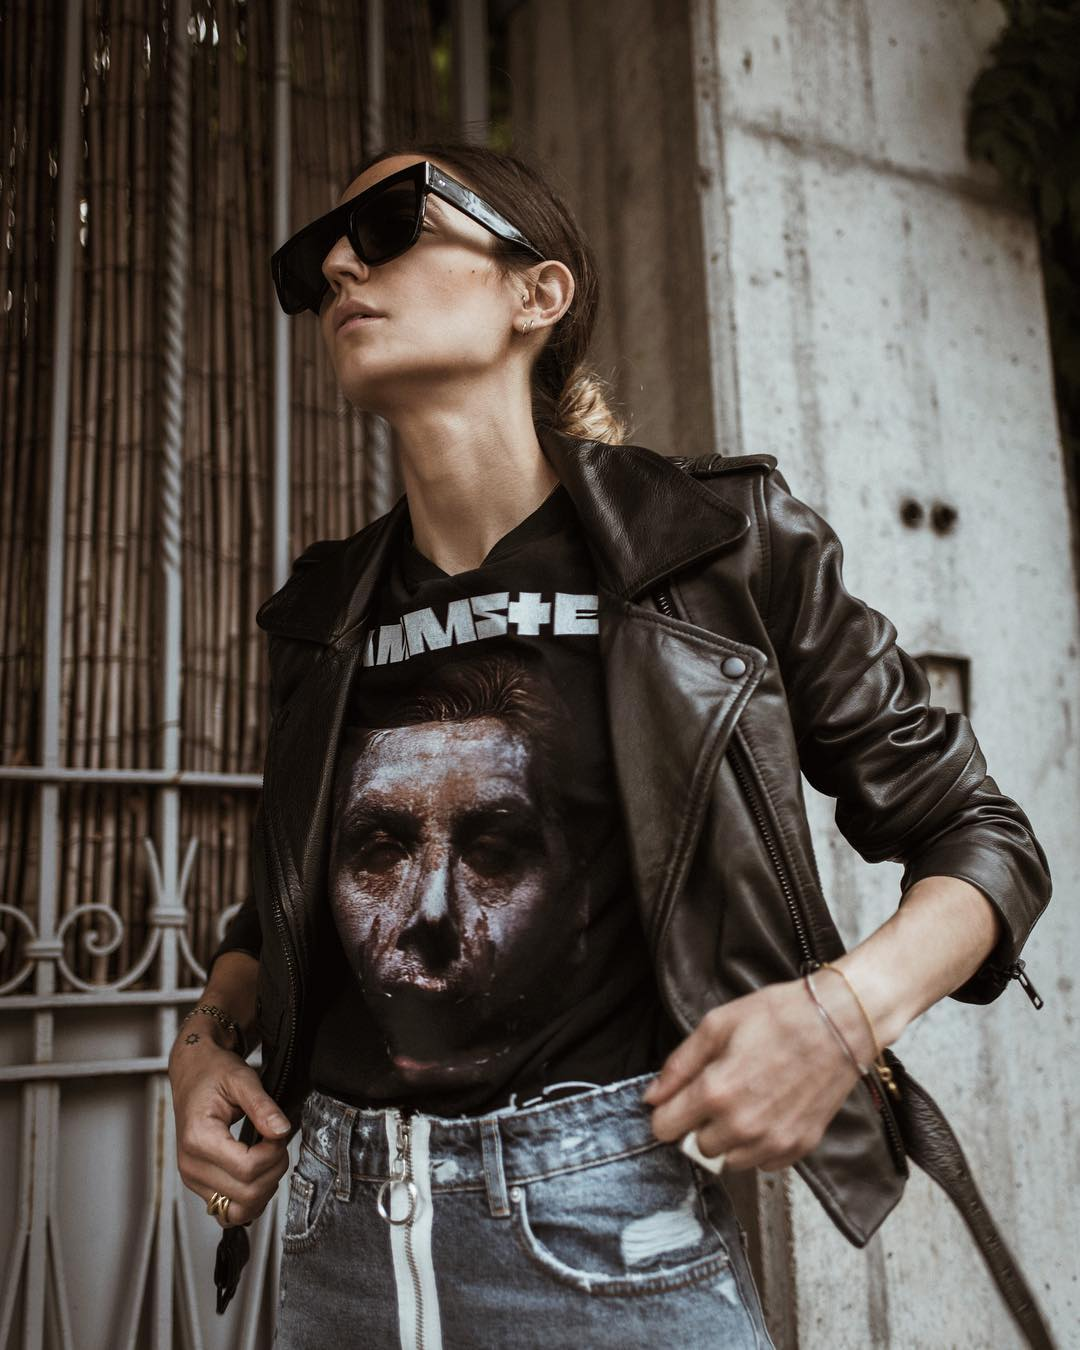 Ilenia Toma from Ilivanille is rocking our Darkside Proteus sunglasses in Milan